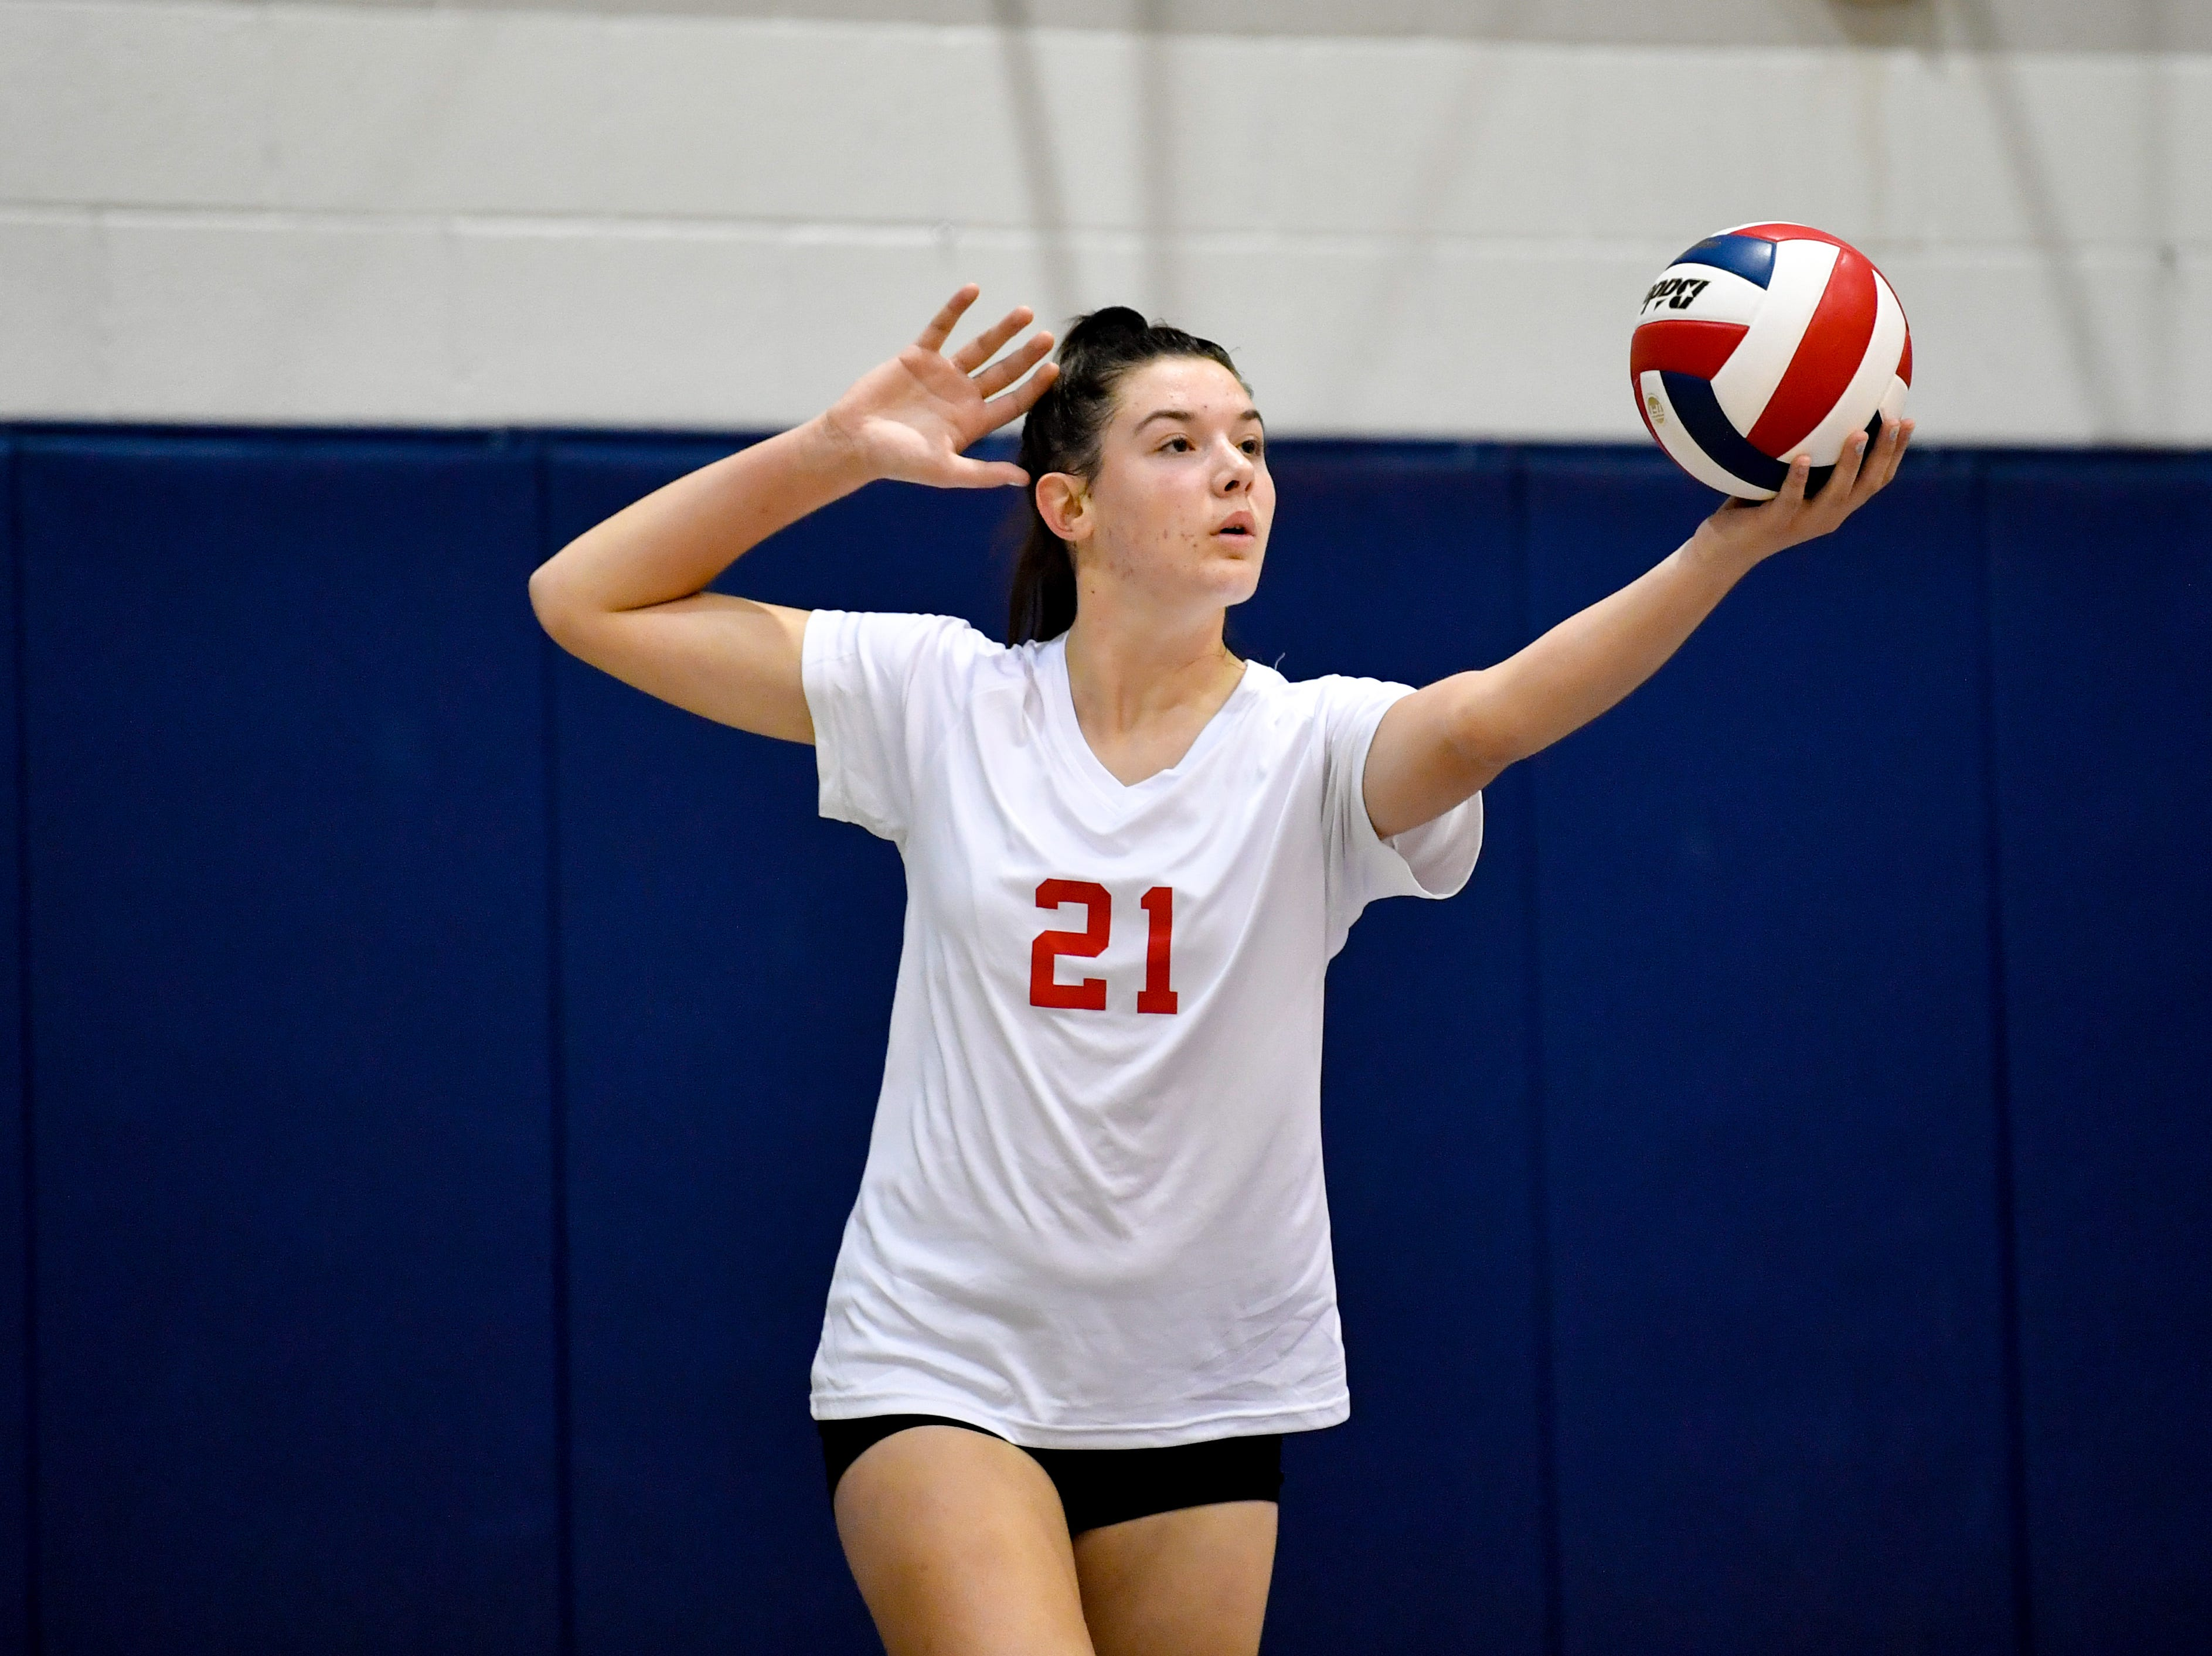 Dover's Emma Davis (21) aims her serve during the YAIAA league volleyball tournament semifinals between West York and Dover, Tuesday, October 23, 2018. The Bulldogs defeated the Eagles 3-1.